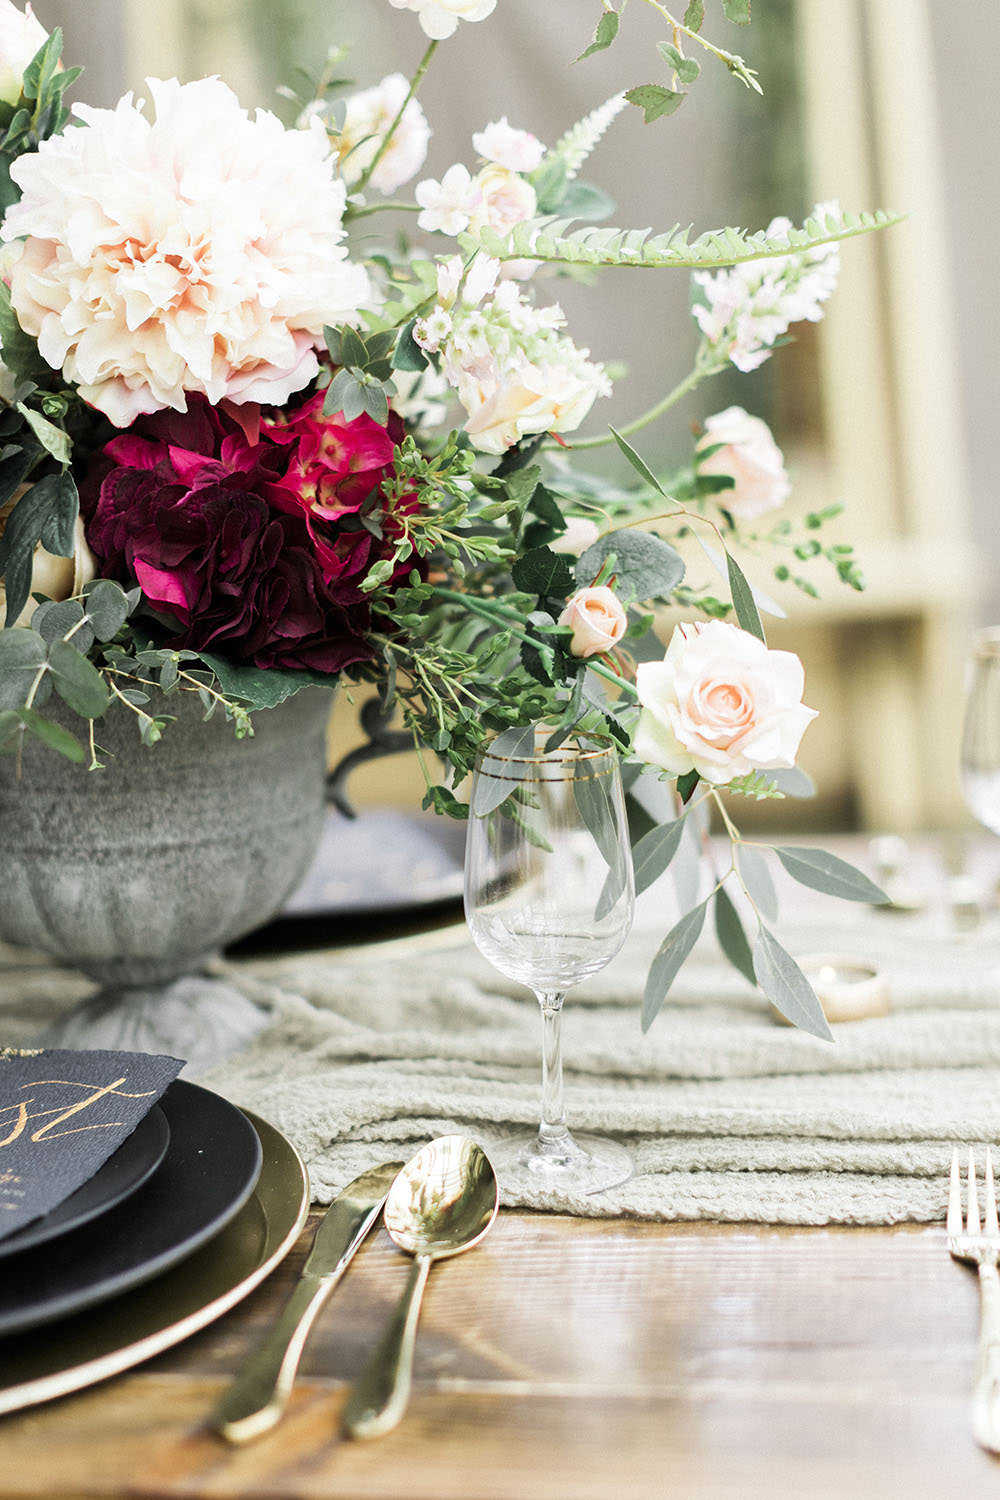 Table Flowers Greenery Centrepiece Blush Flowers Foliage Burgundy Gold Wedding Ideas Sarah Porter Photography